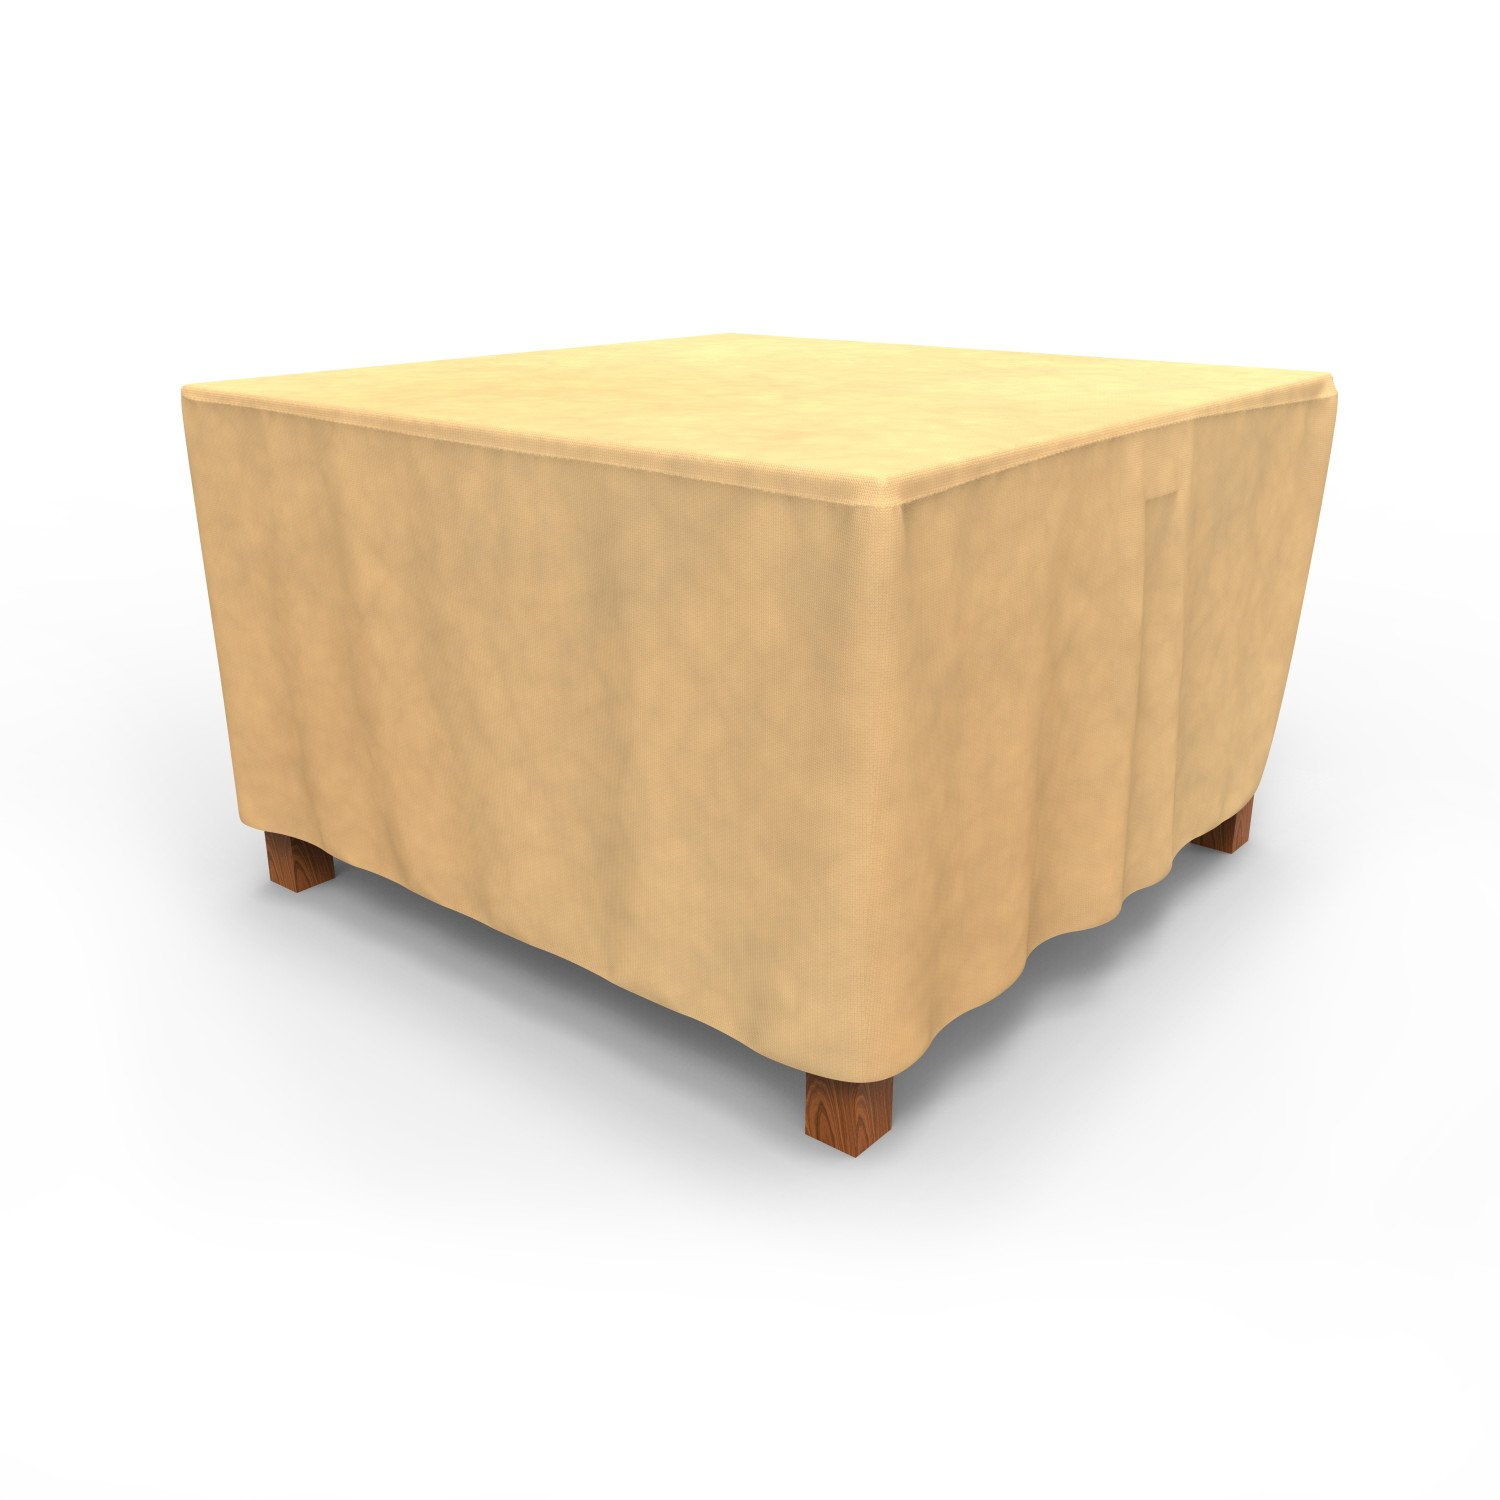 Budge P5A09SF1 All-Seasons Square Patio Table Cover, Medium, Tan by Budge